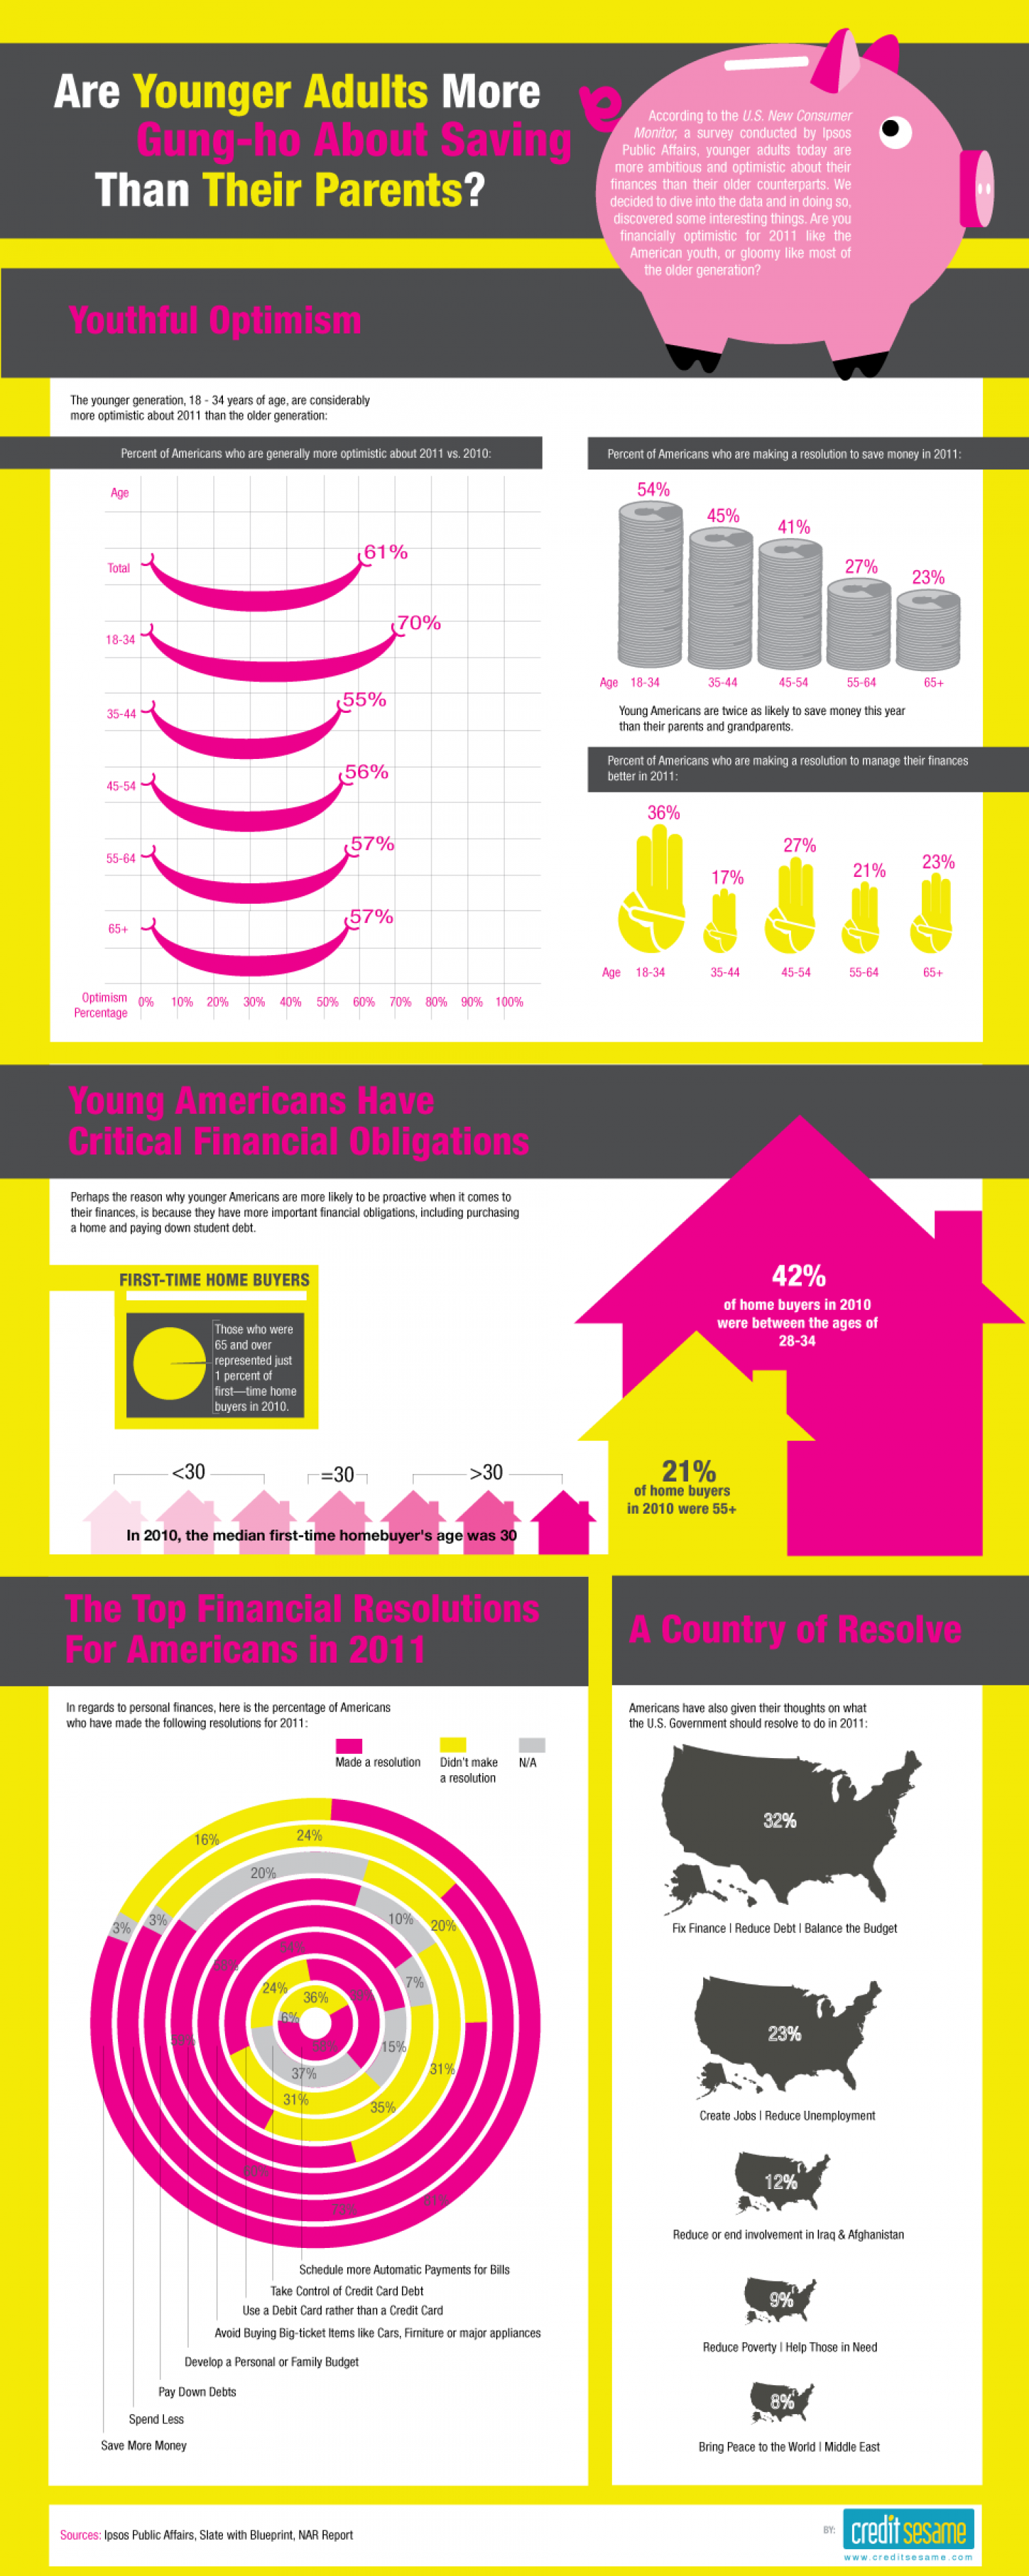 Are Younger Adults More Gung-Ho About Saving Than Their Parents? Infographic